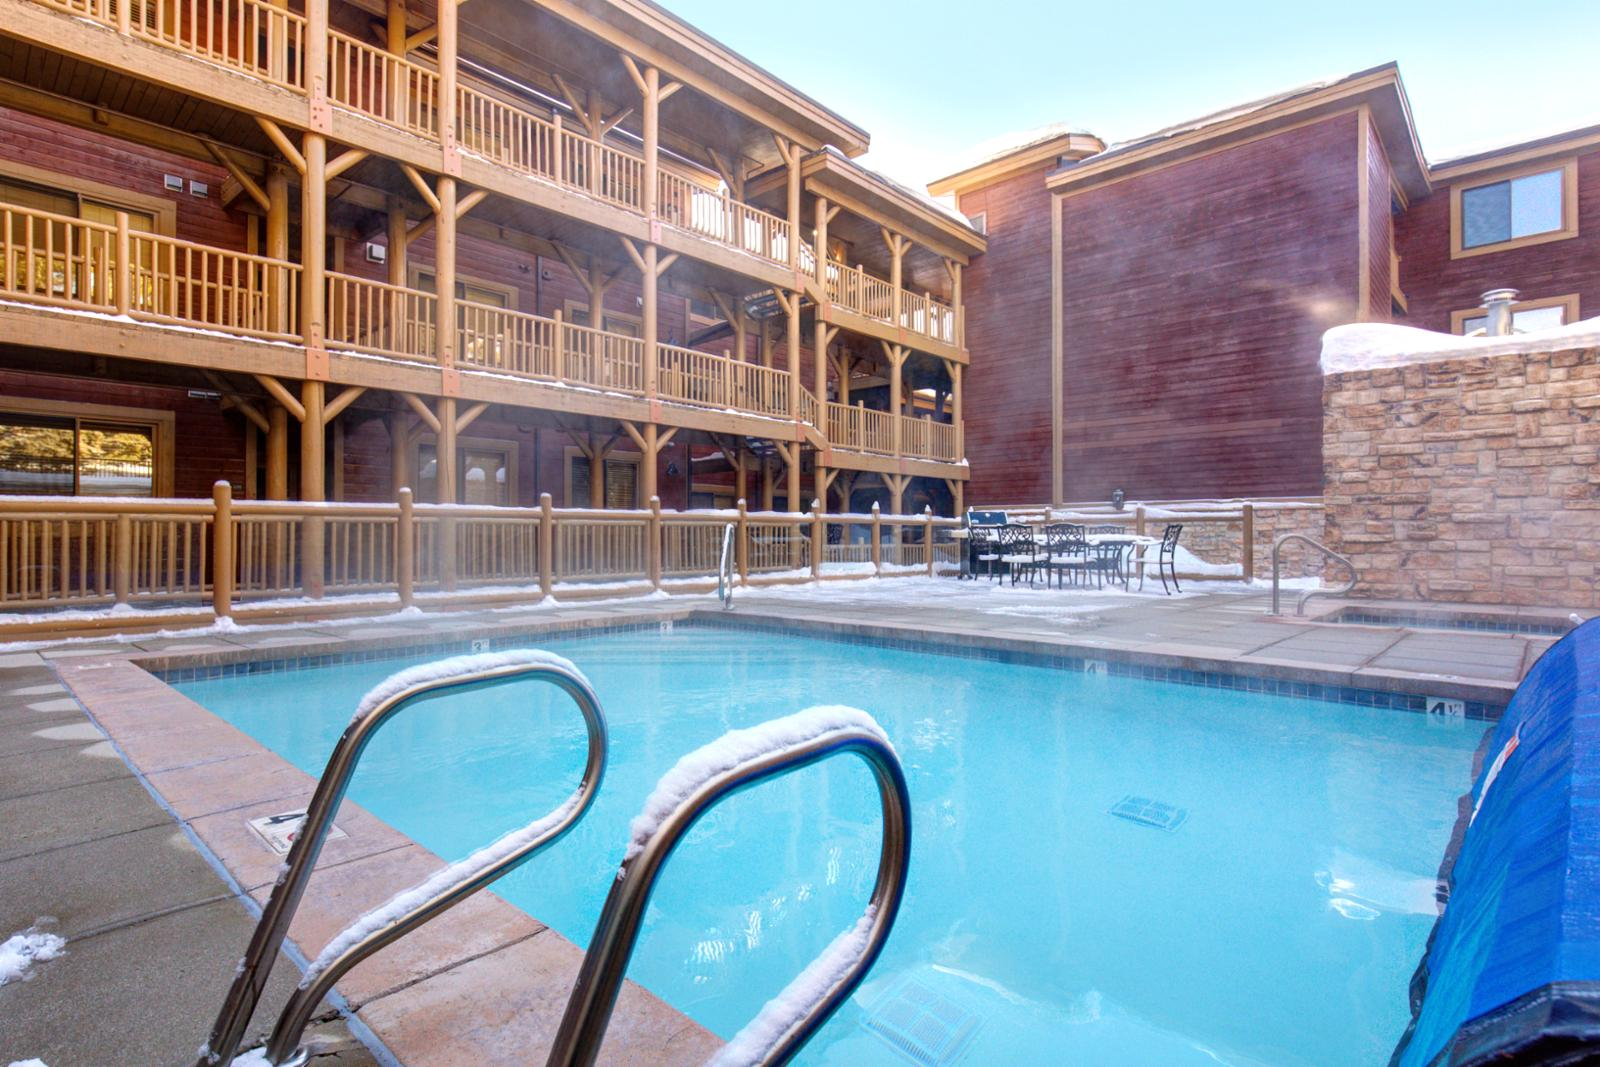 Enjoy the heated pool and hot tub